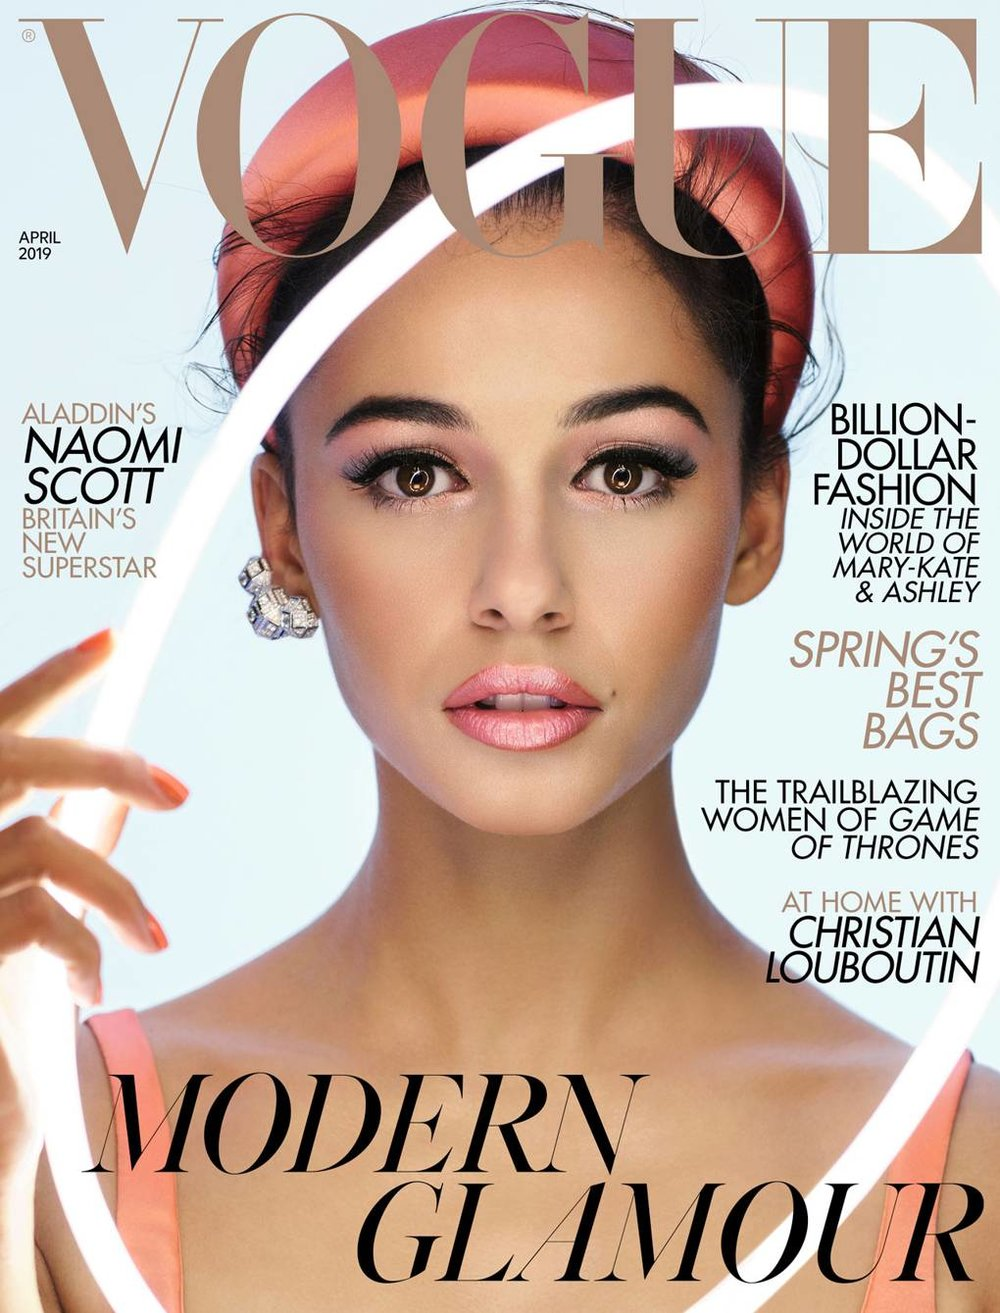 Custom Neon headpiece on the cover of British Vogue.